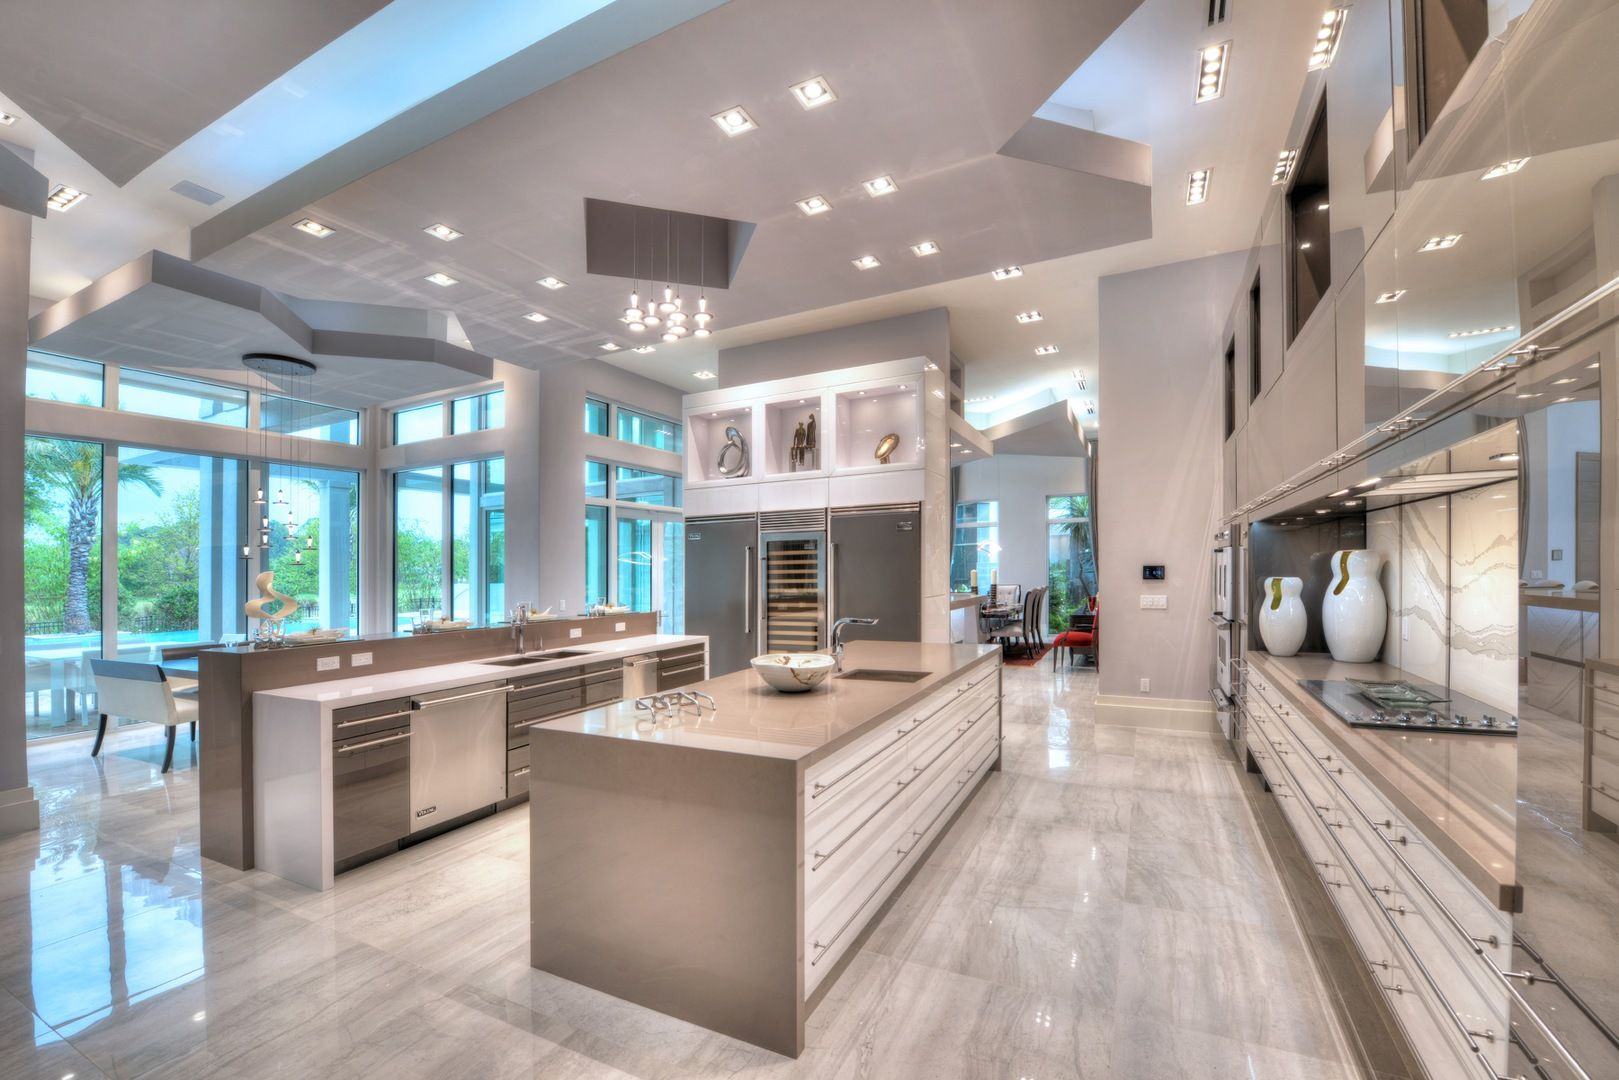 Photo Galleries Mansions, House styles, Ormond beach